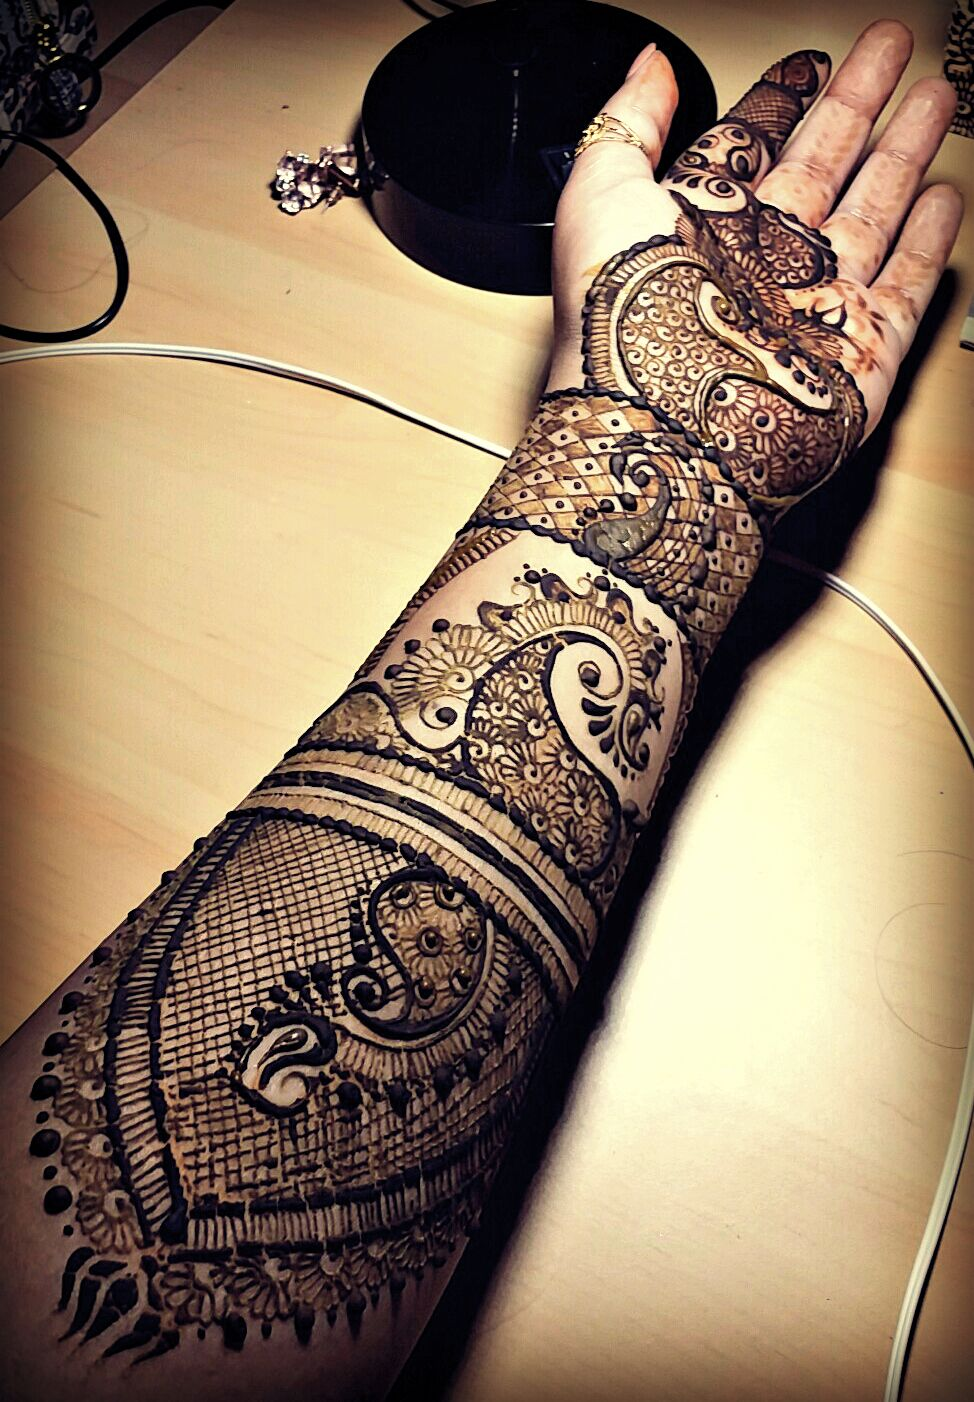 Bridal Style Intricate Henna Offering Services In Dallas Tx Now